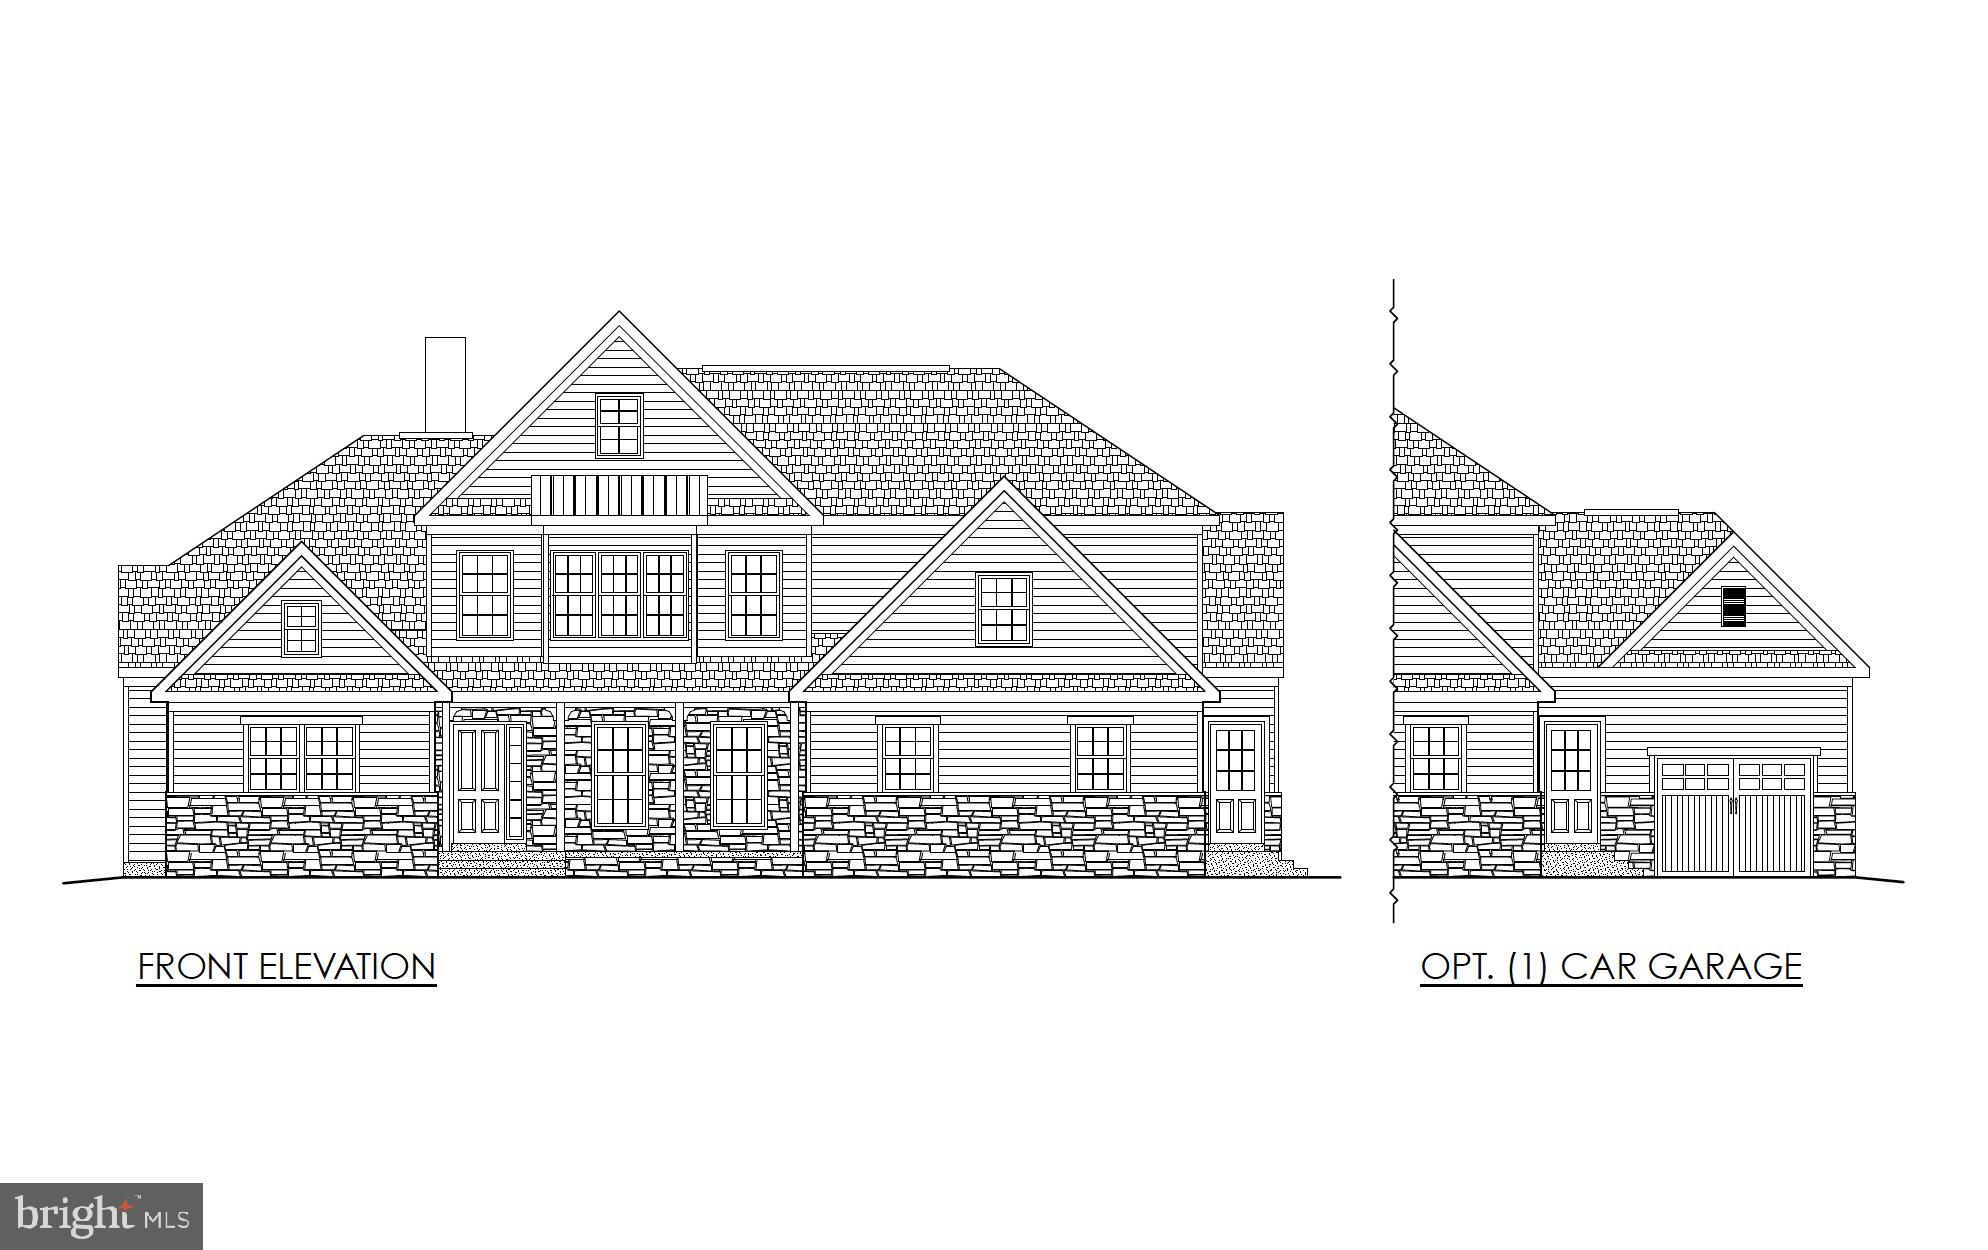 Newest Community in Birmingham Township! Beautiful & Tranquil With Privacy Yet Minutes from Rt. 202 and Rt. 1. Lot 2 has a daylight walkout basement.  9 Foot Ceilings on First Floor.  Fully Customizable Plans or Build Your Plans.  Choice of lot is Available.  Listing agent is related to Seller.